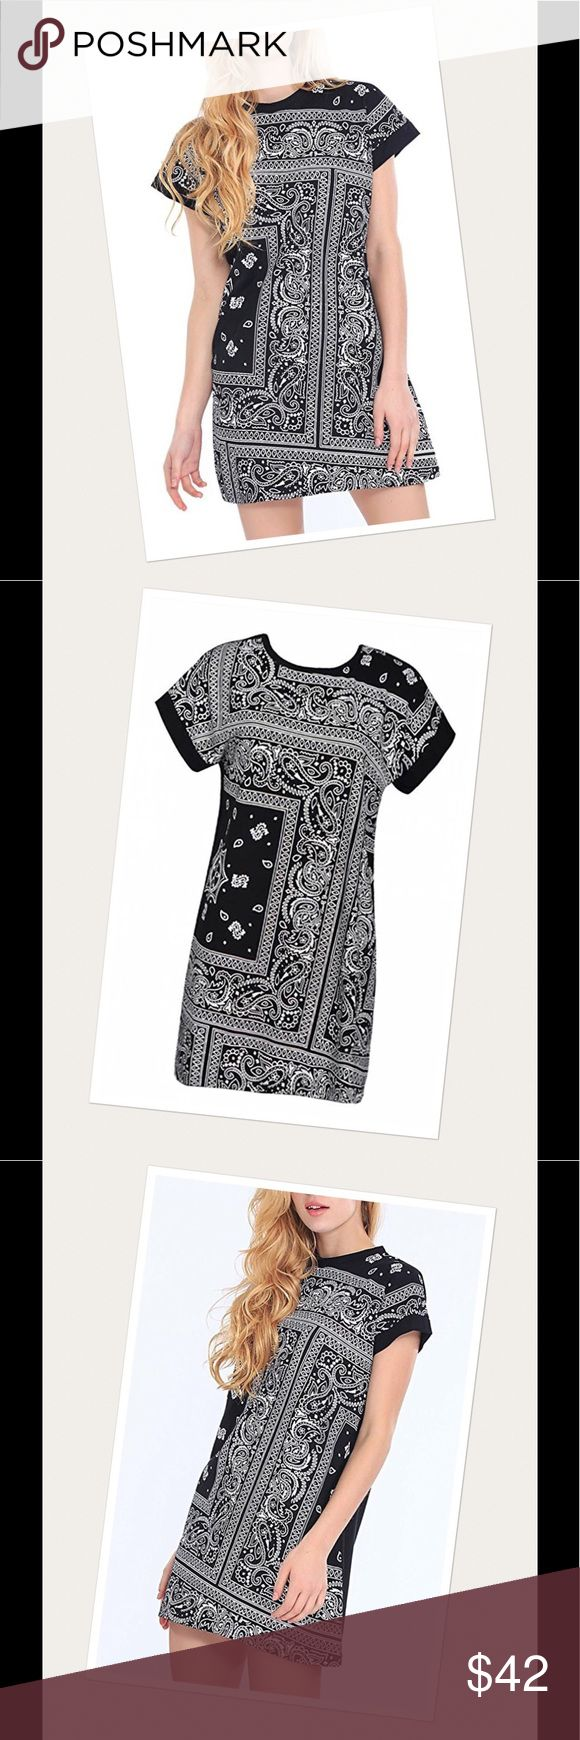 Festival t shirt dress Brand new with tags. Black or navy blue. 100% cotton. Above knee, mini dress. O neck. Available sizes: extra small, small, medium, large, extra large. Posh rules only. No trades. No paypal. No low ball offers. Pls and thanks. Serious buyers only. Bundle your likes and I'll send you a private discounted offer. Dresses Mini